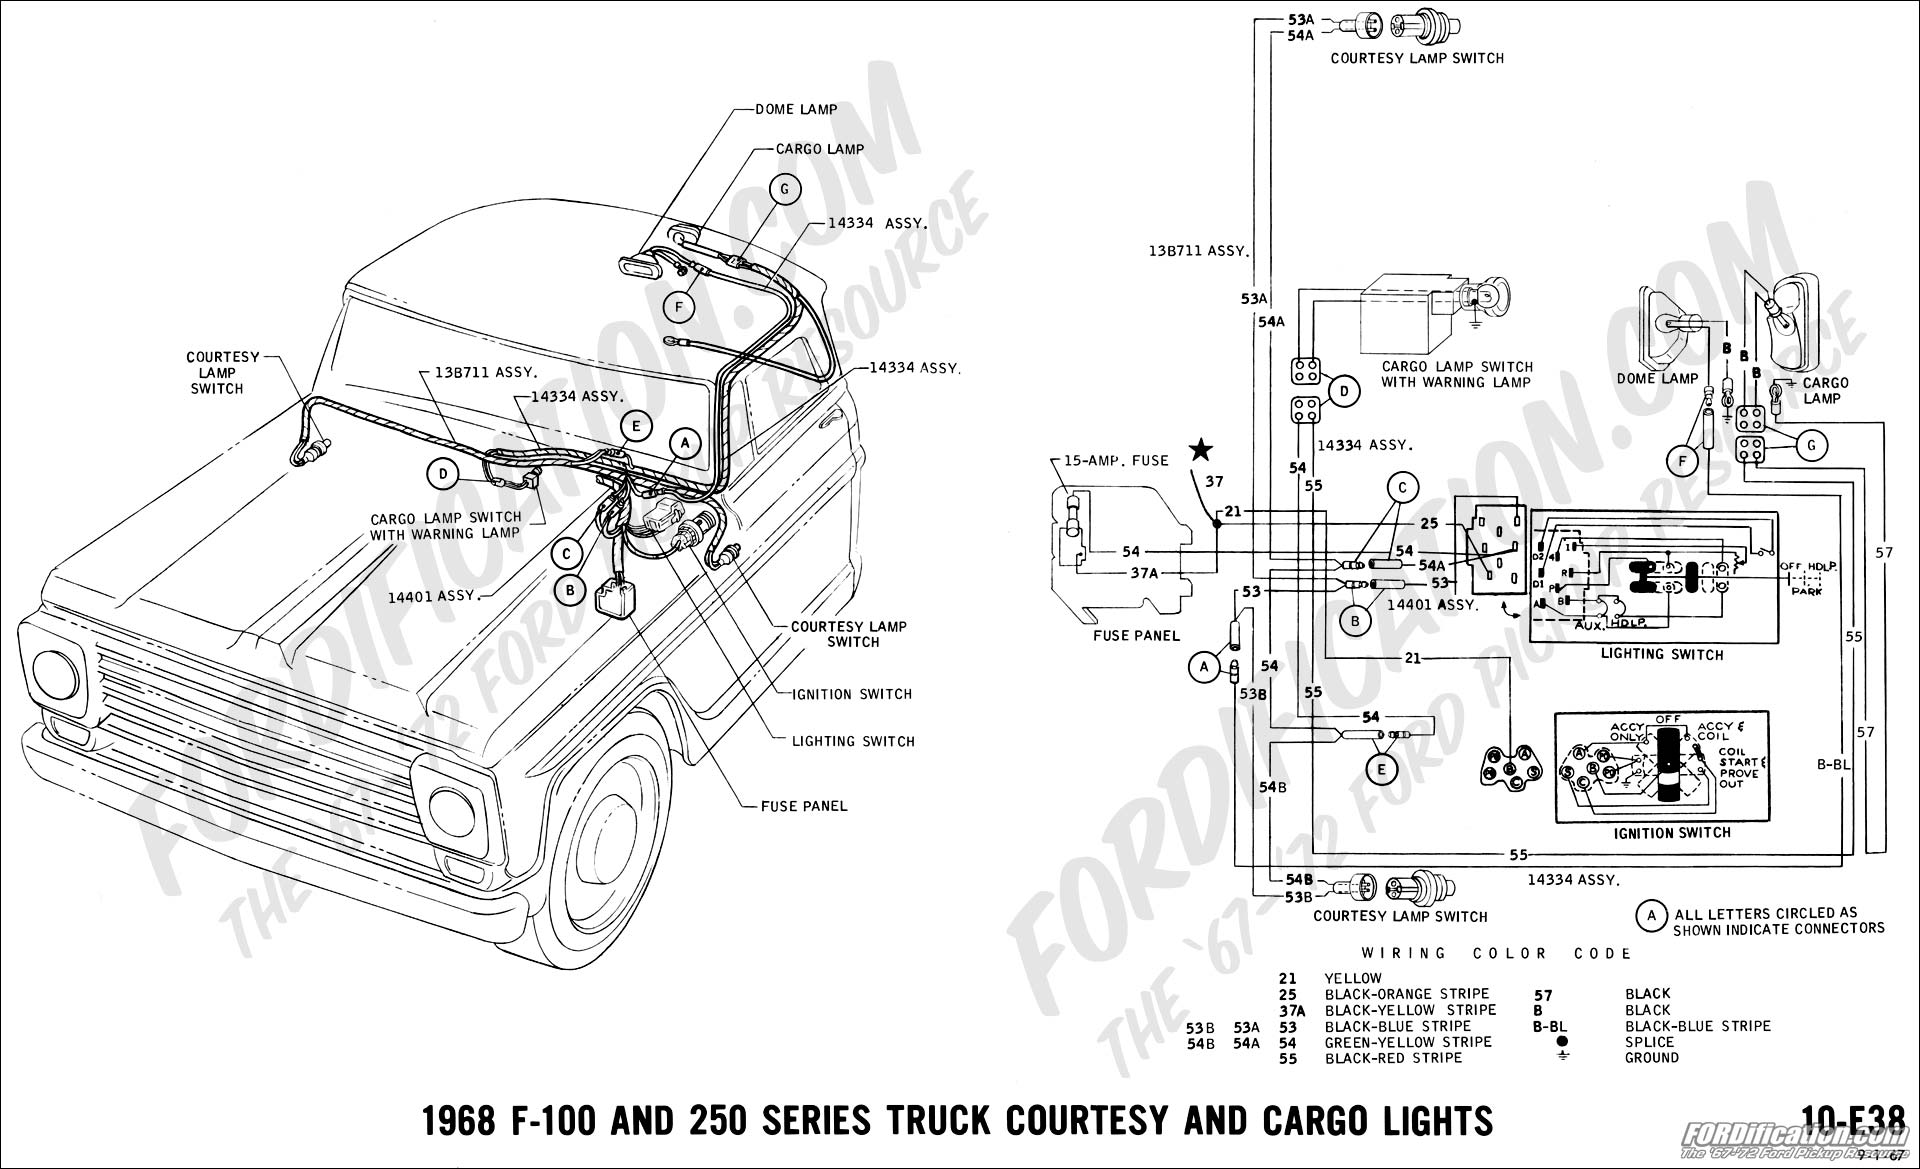 omejorarmiweb likewise Hino Truck Wiring Diagram together with Jeep Steering Column Wiring Diagram 1985 as well Viewtopic besides 1963 Impala Wiring Diagram. on 1972 dodge truck headlight diagrams